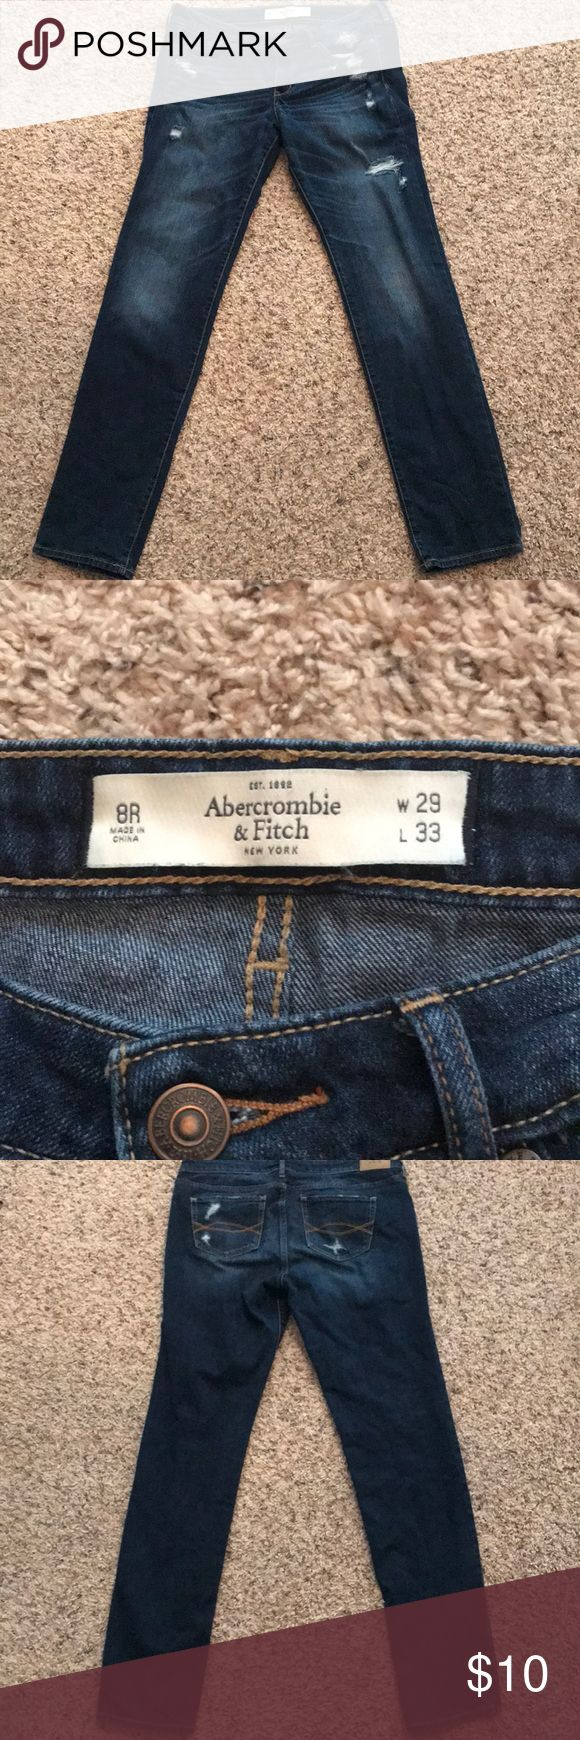 Abercrombie jeans Slightly ripped Abercrombie and Fitch jeans - size 8R Abercrombie & Fitch Jeans Skinny